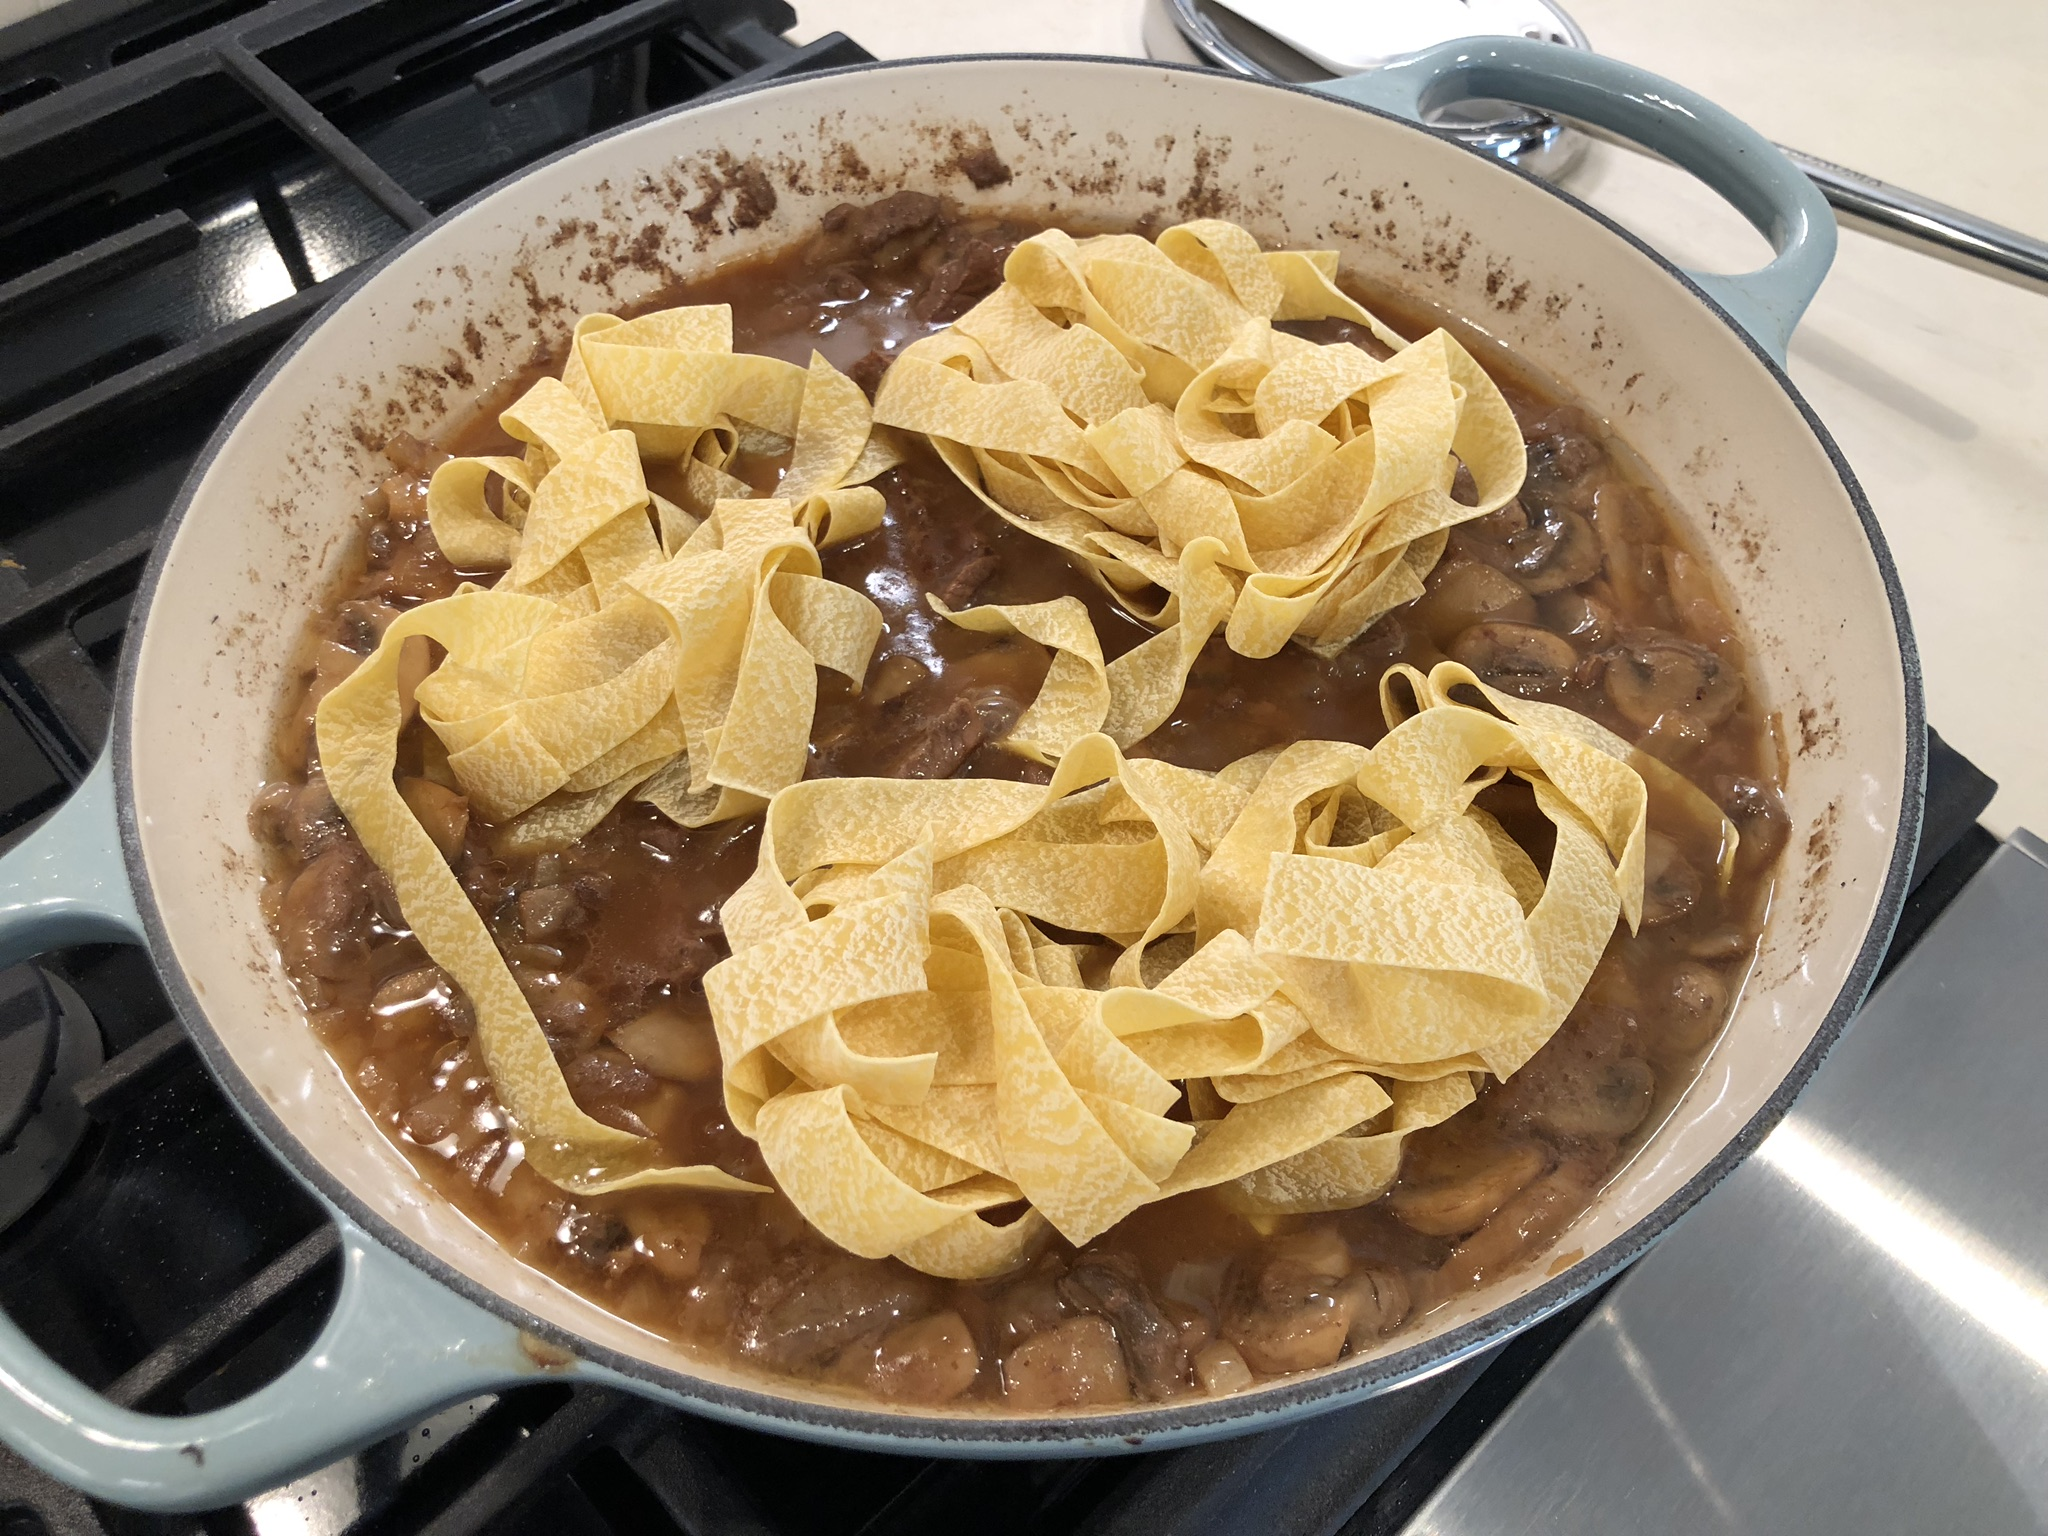 Place the Noodles in the Beef Stroganoff